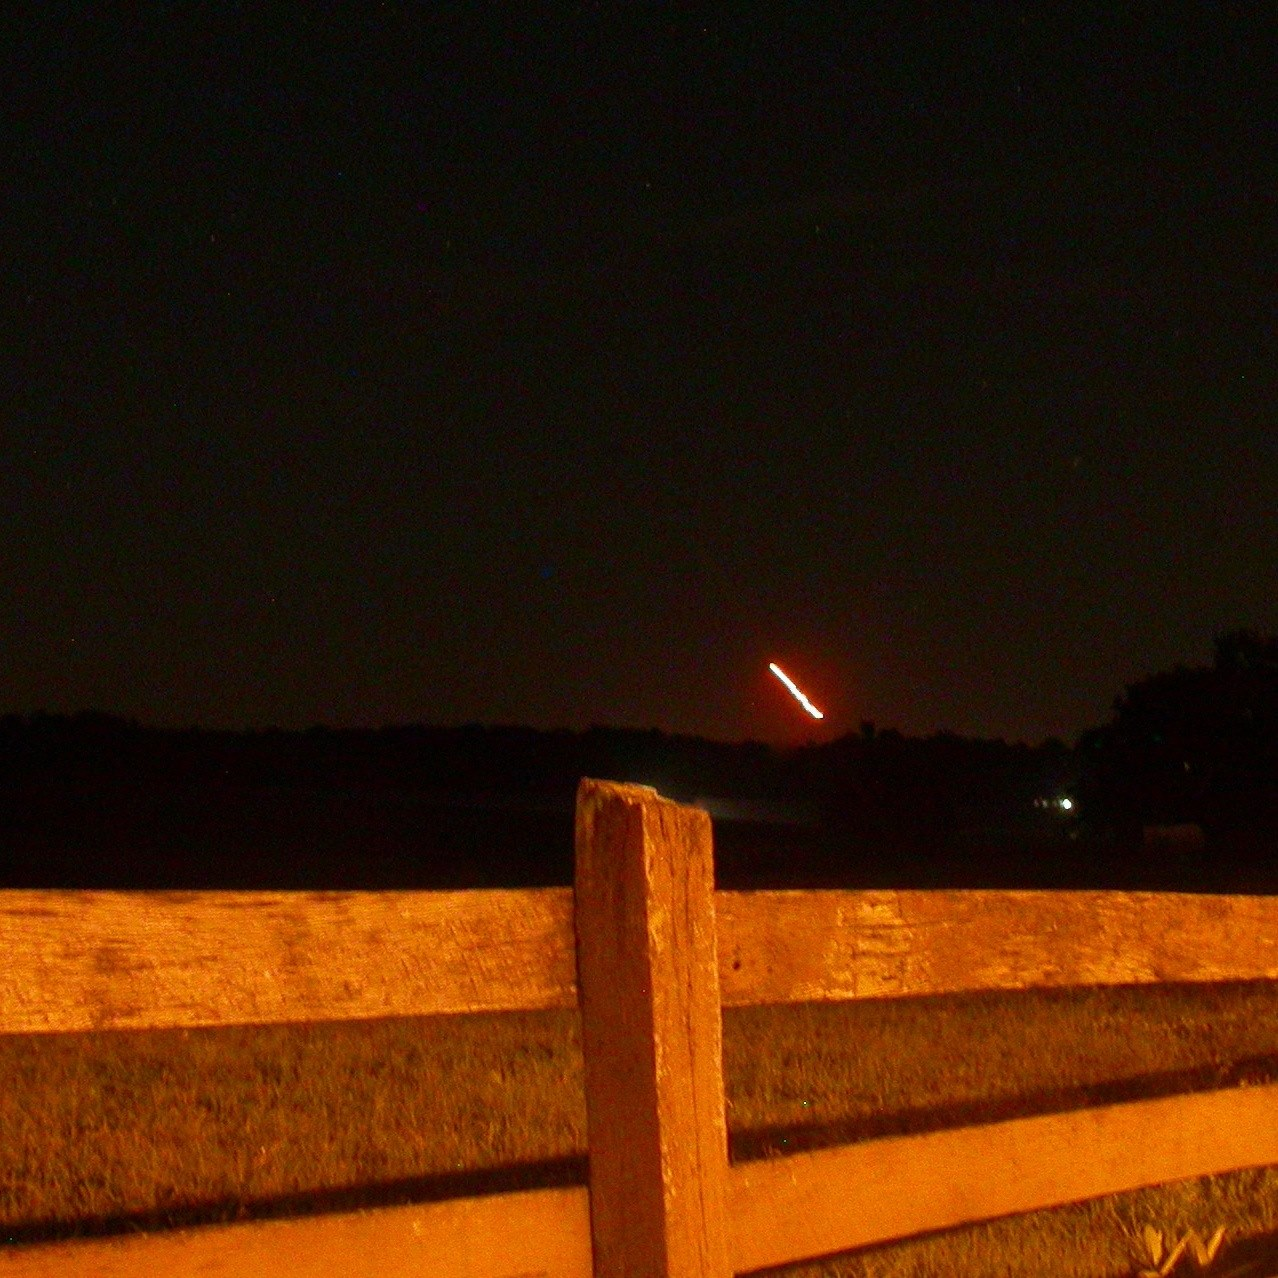 LADEE launch on September 7, 2013 as seen from Lancaster County, Pennsylvania by our friend Beth Katz. Thanks, Beth!